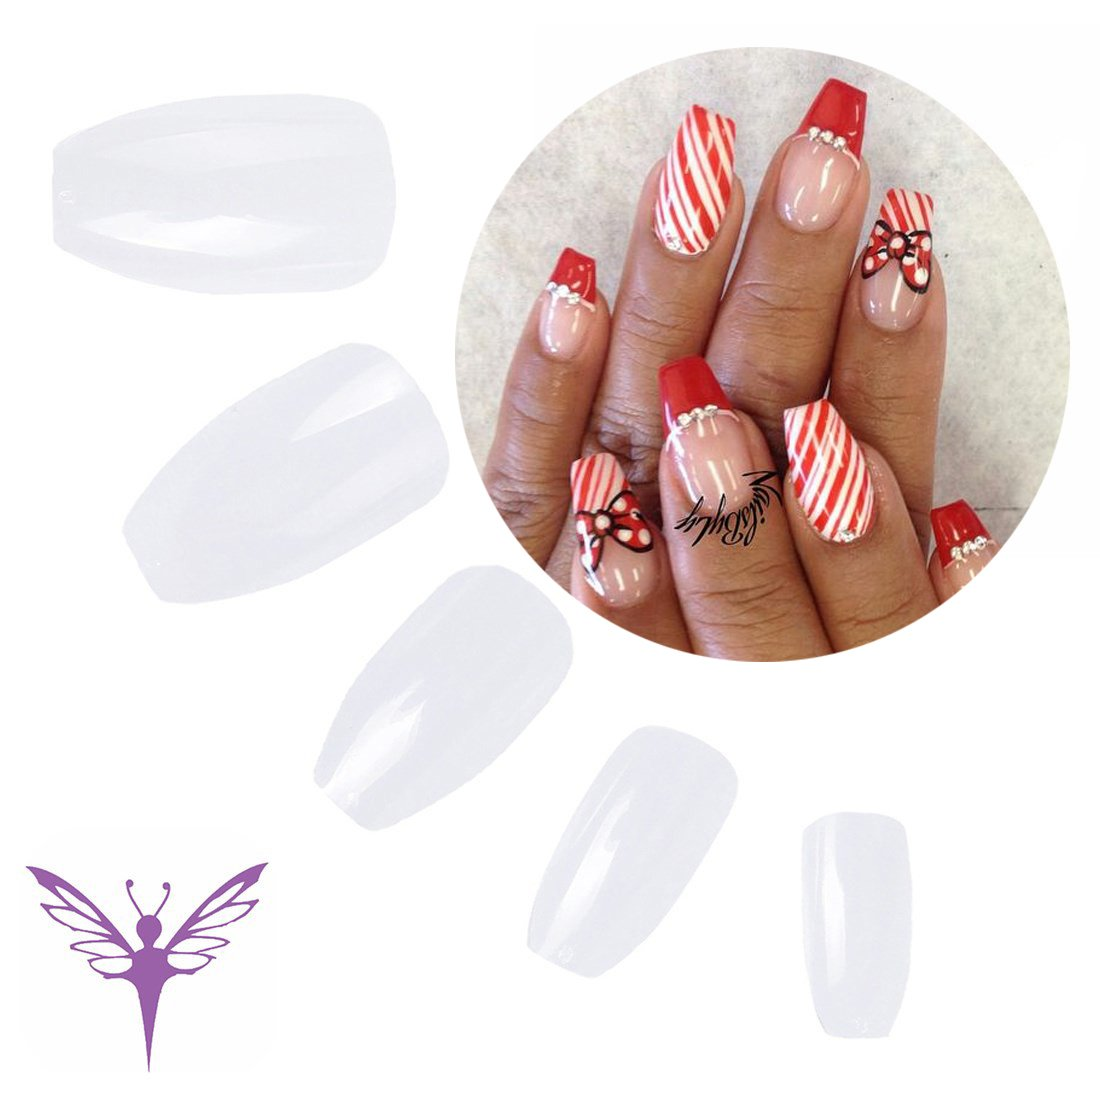 Amazon.com : Coffin Fake Nails, 500 pcs Clear Color Full Cover ...